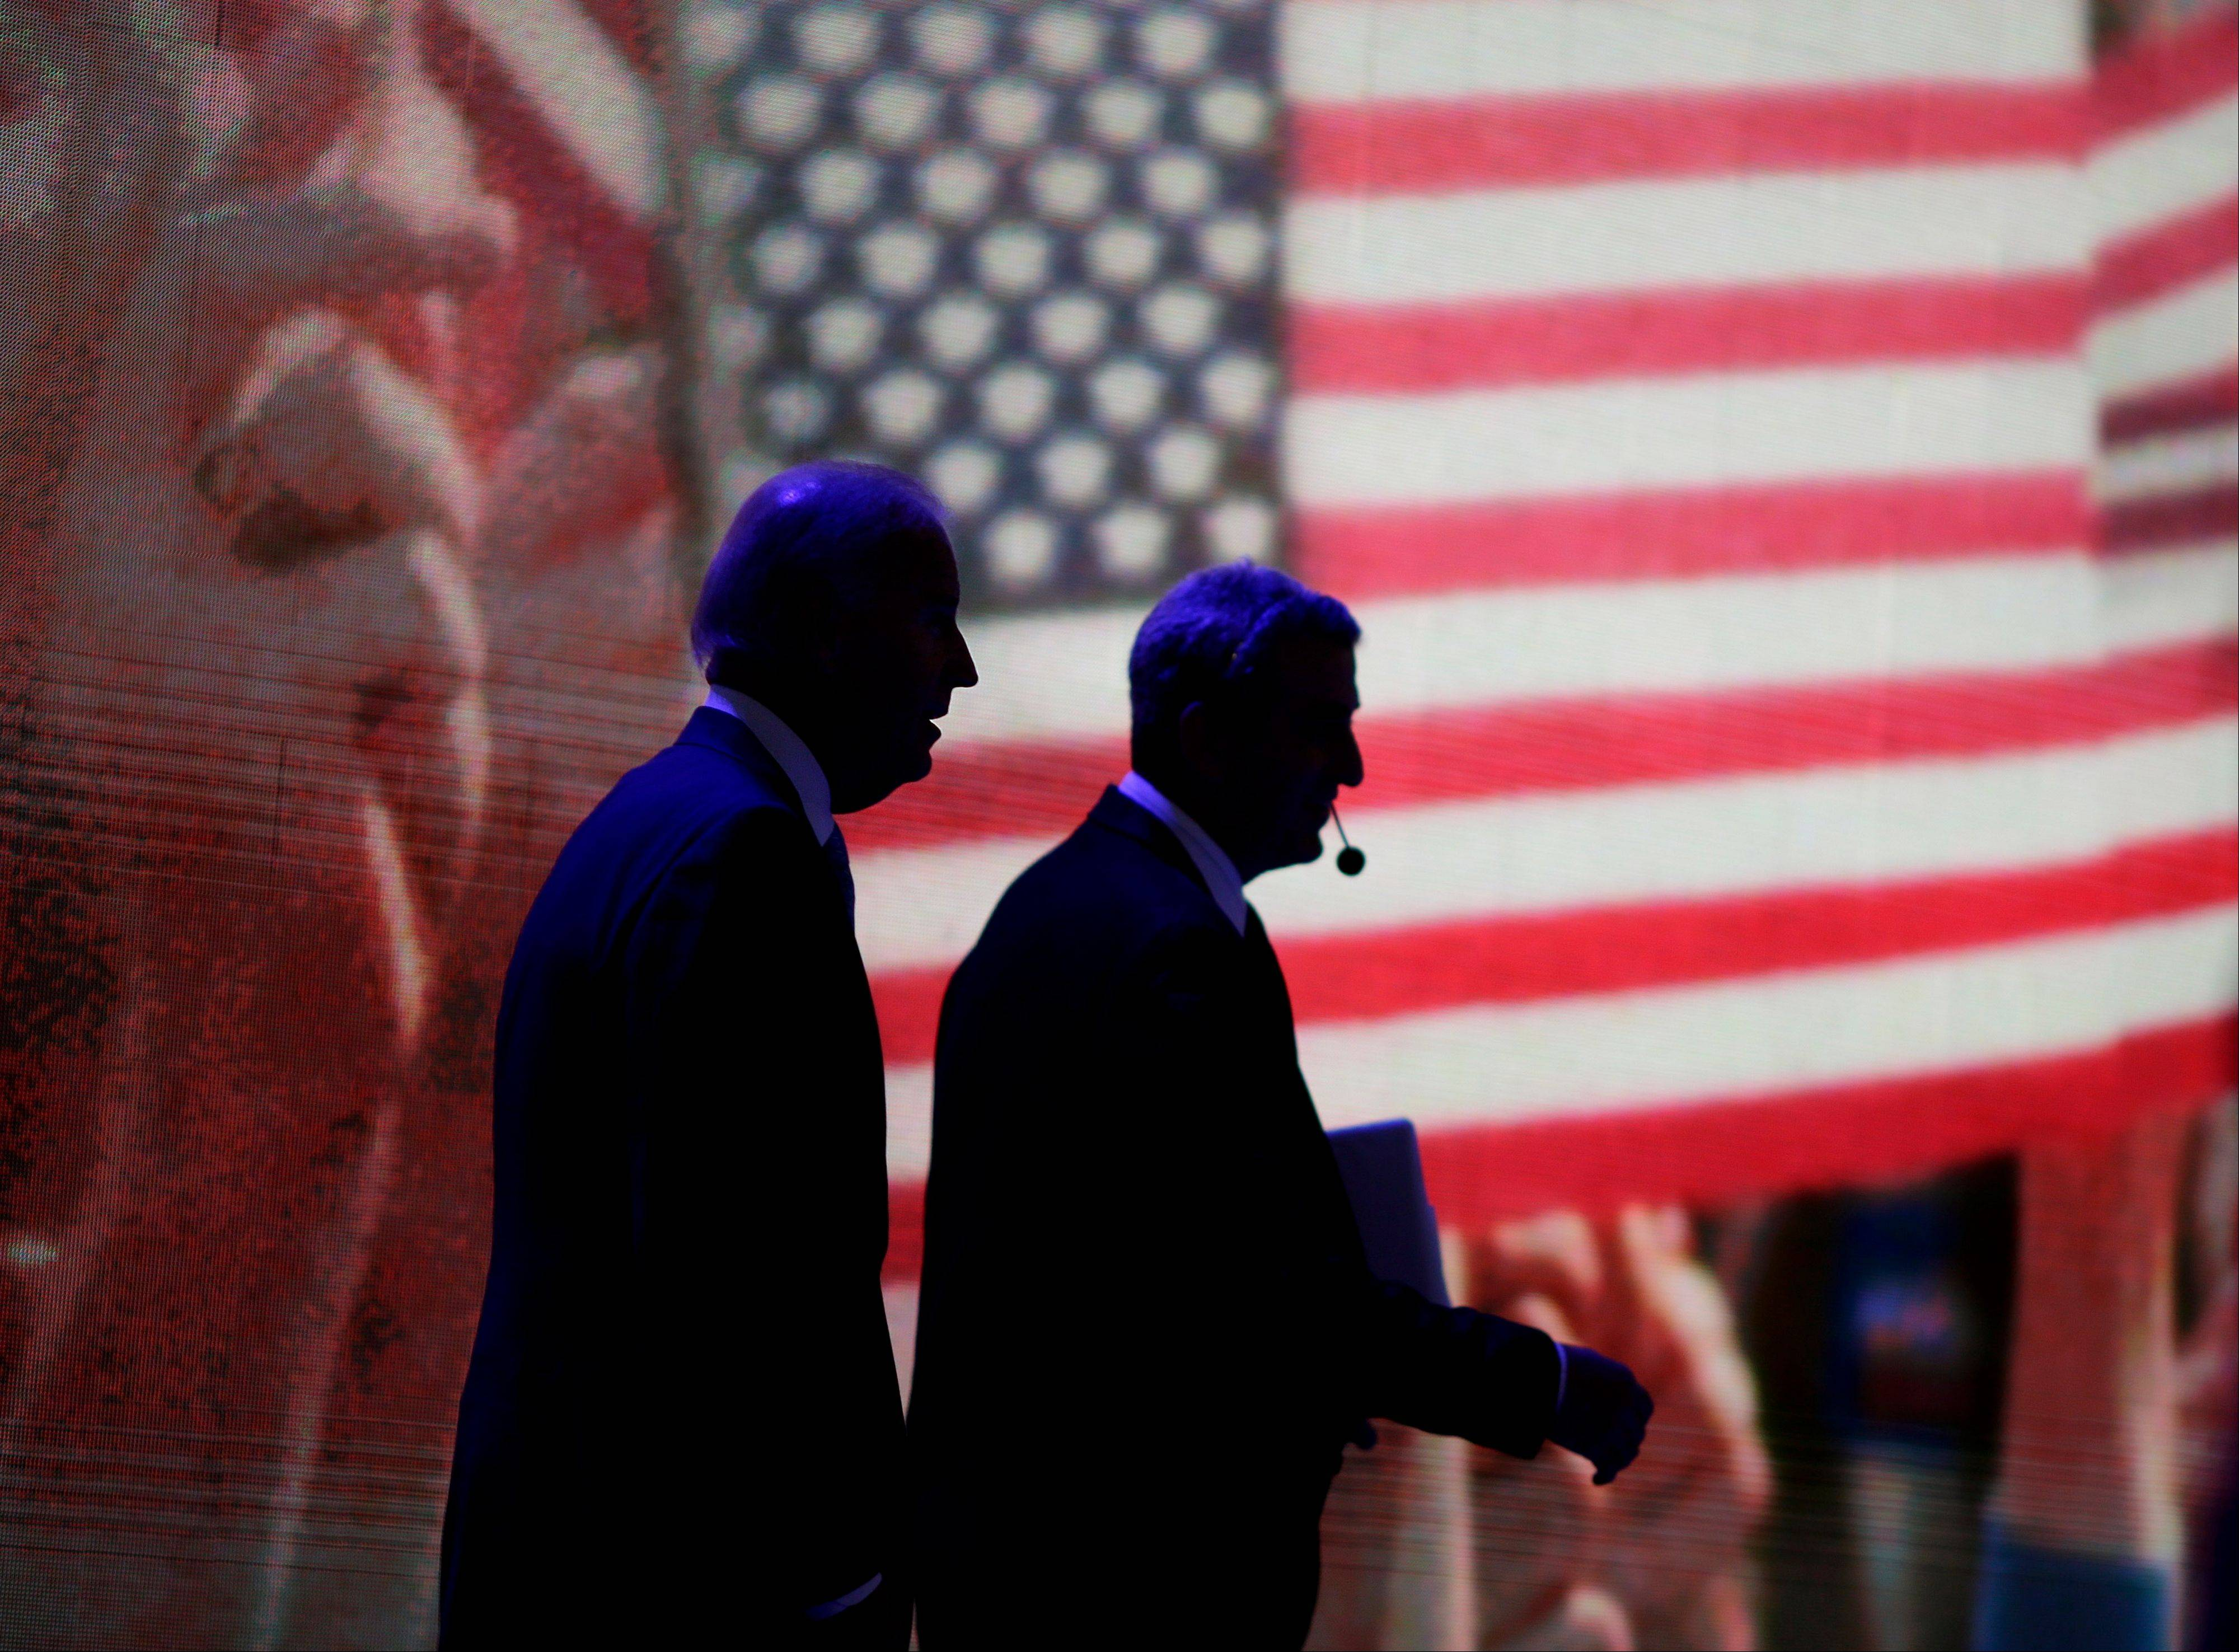 Vice President Joe Biden, left, walks out with a stage manager for a microphone check in preparation for his speech at the Democratic National Convention early Thursday, Sept. 6, 2012, in Charlotte, N.C.